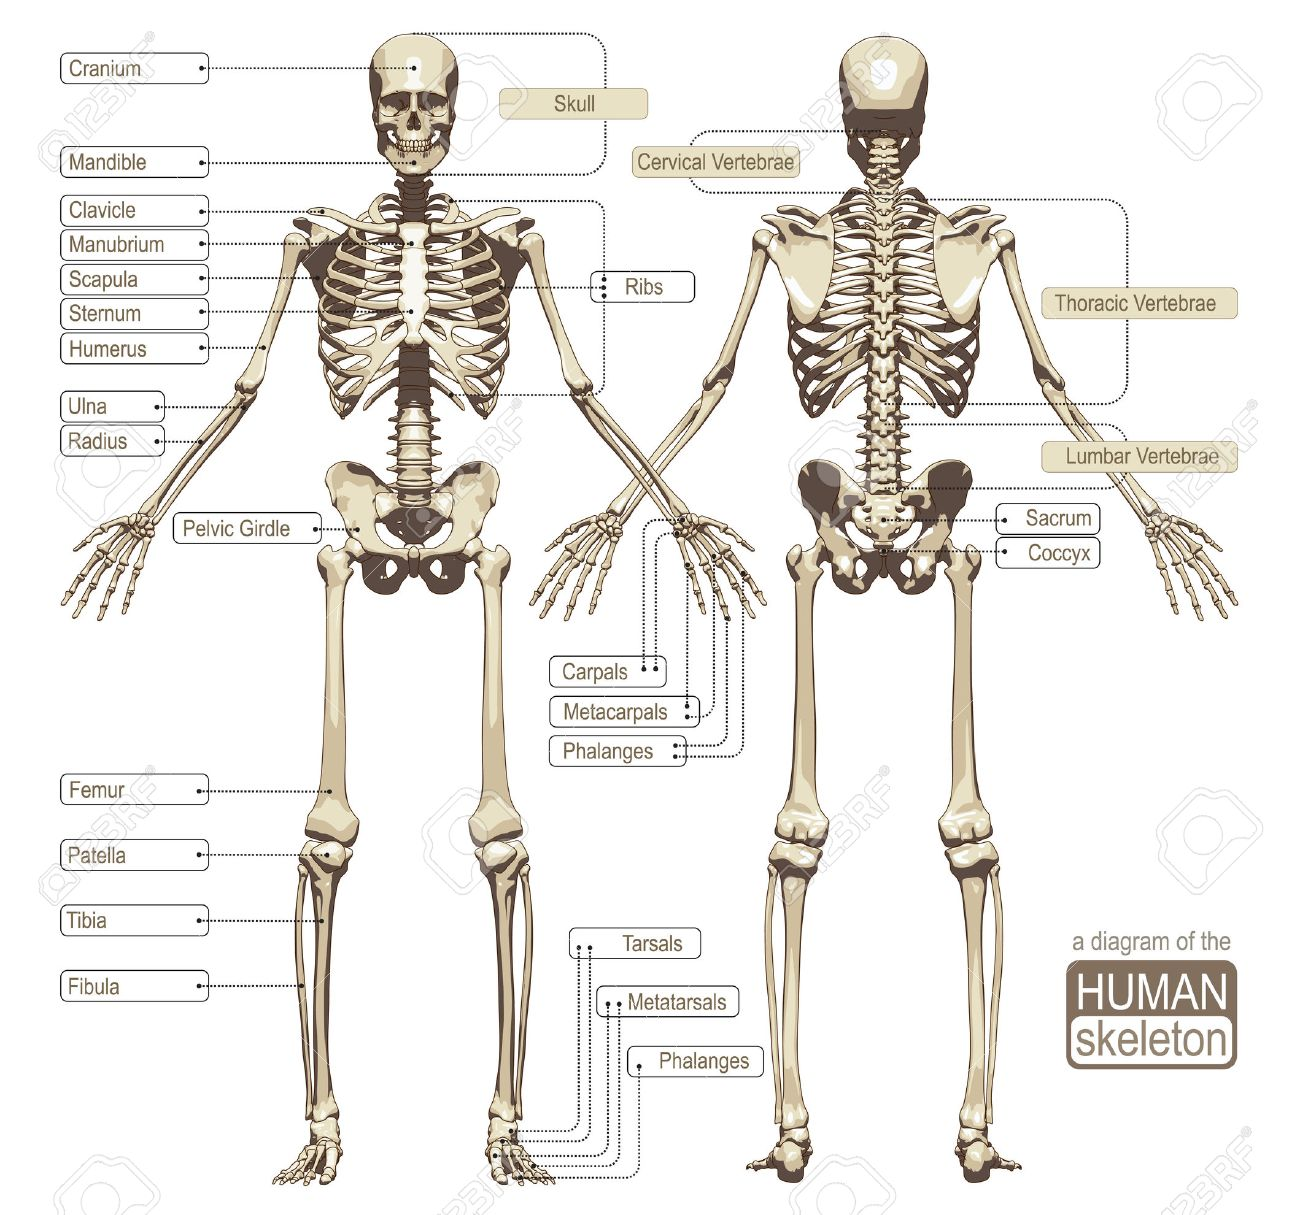 anatomy of the coccyx choice image - learn human anatomy image, Skeleton